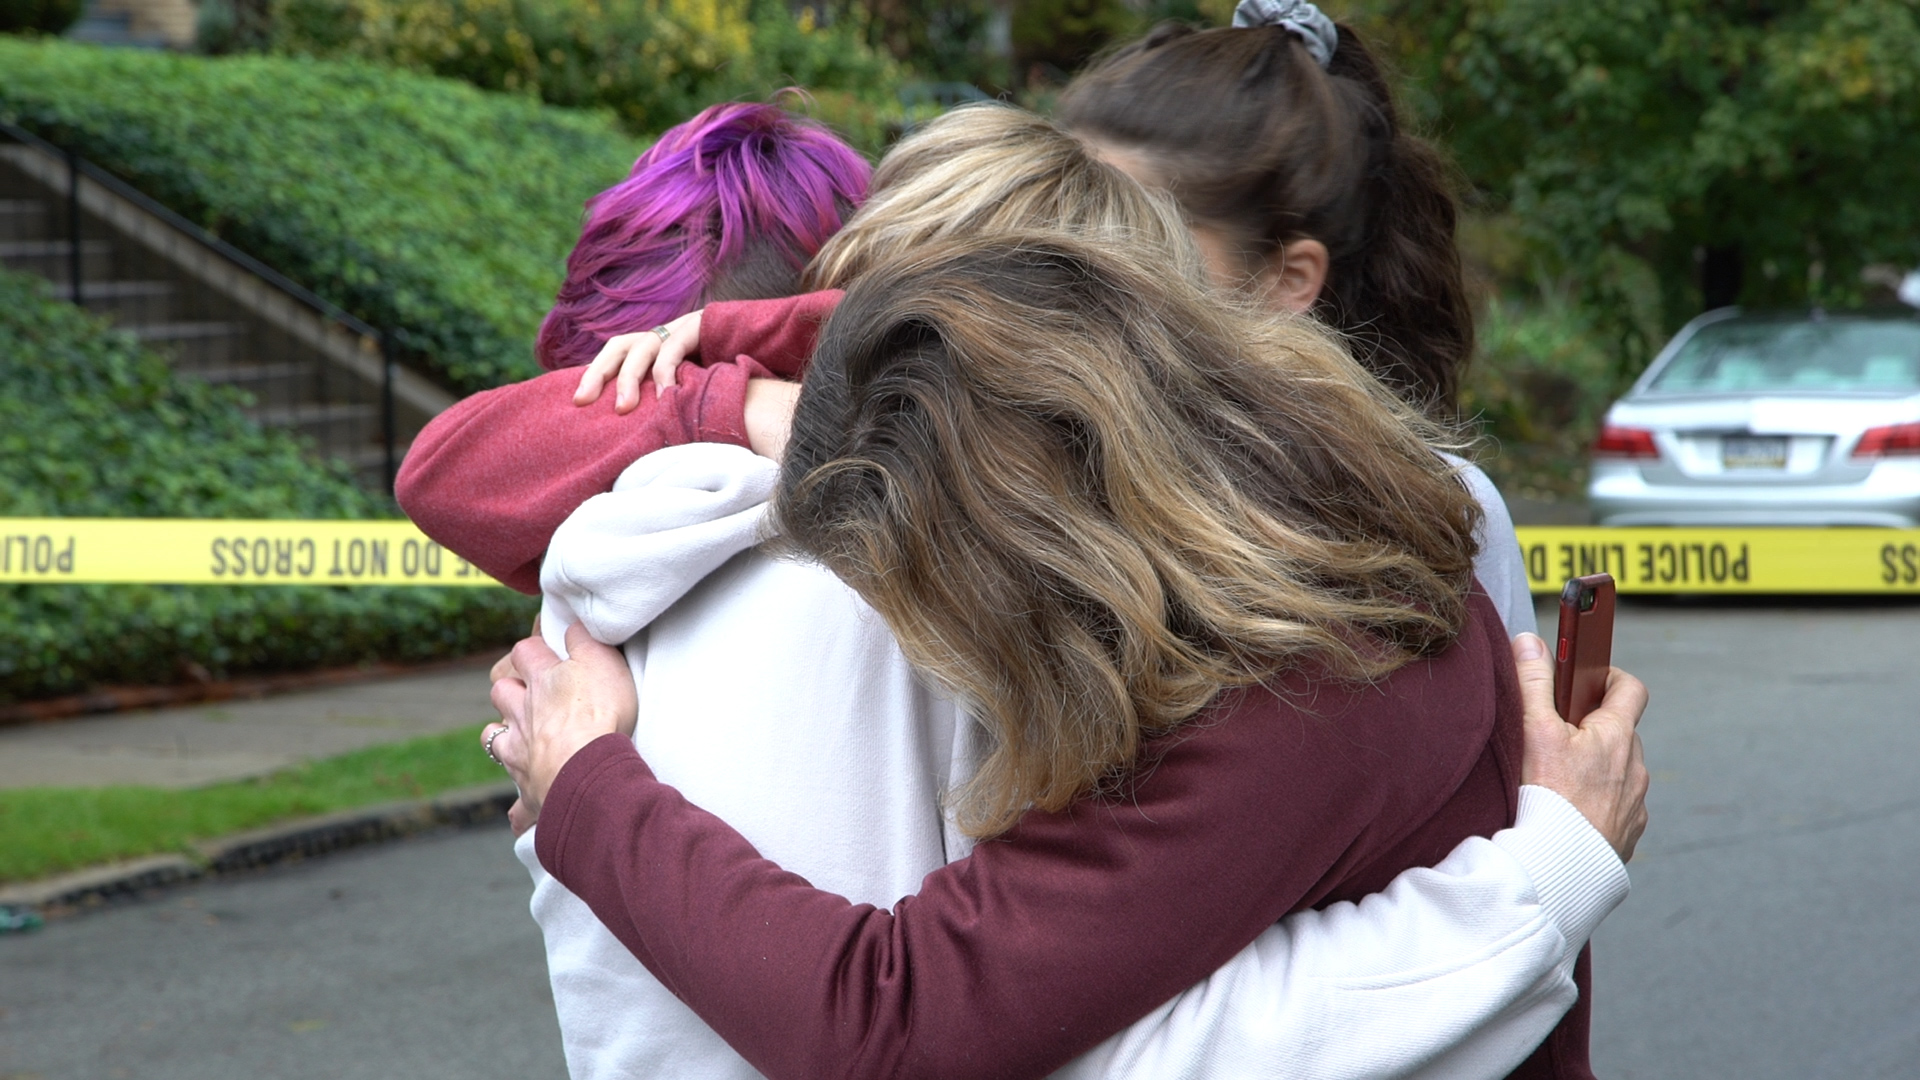 The slaughter in Pittsburgh was not 'unimaginable.' It was inevitable.